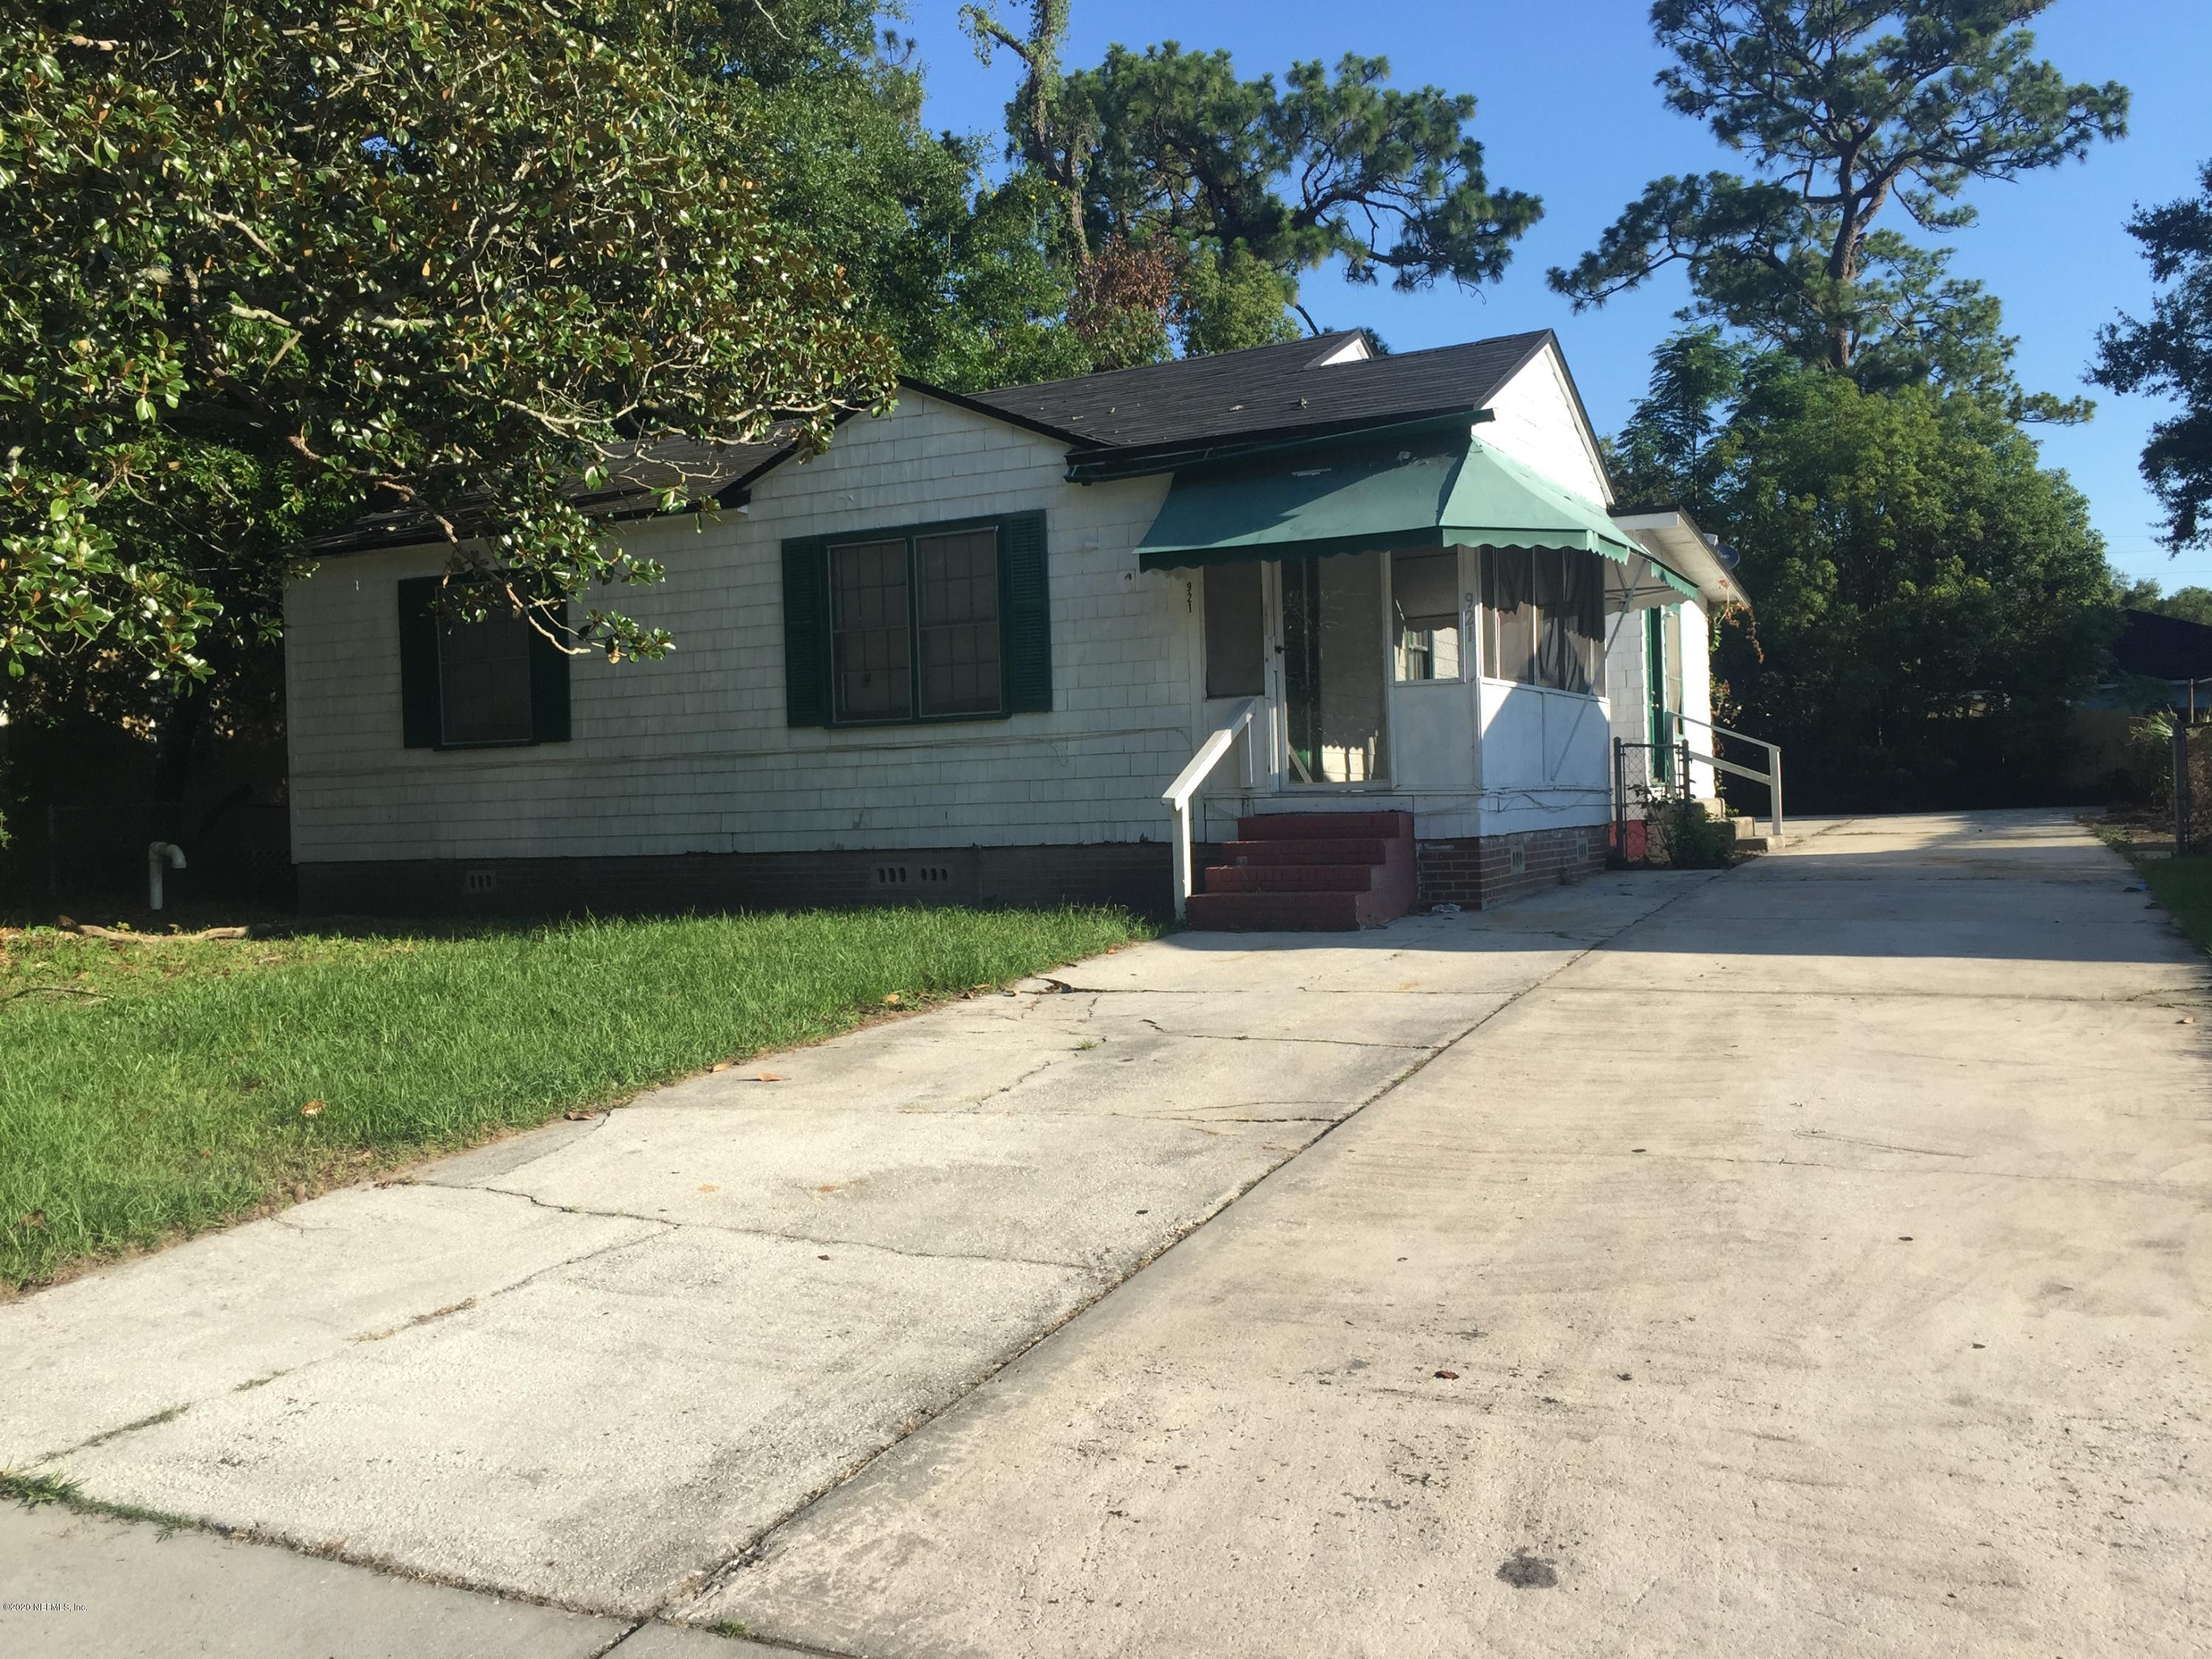 921 ETHAN ALLEN, JACKSONVILLE, FLORIDA 32208, 3 Bedrooms Bedrooms, ,1 BathroomBathrooms,Investment / MultiFamily,For sale,ETHAN ALLEN,1080526